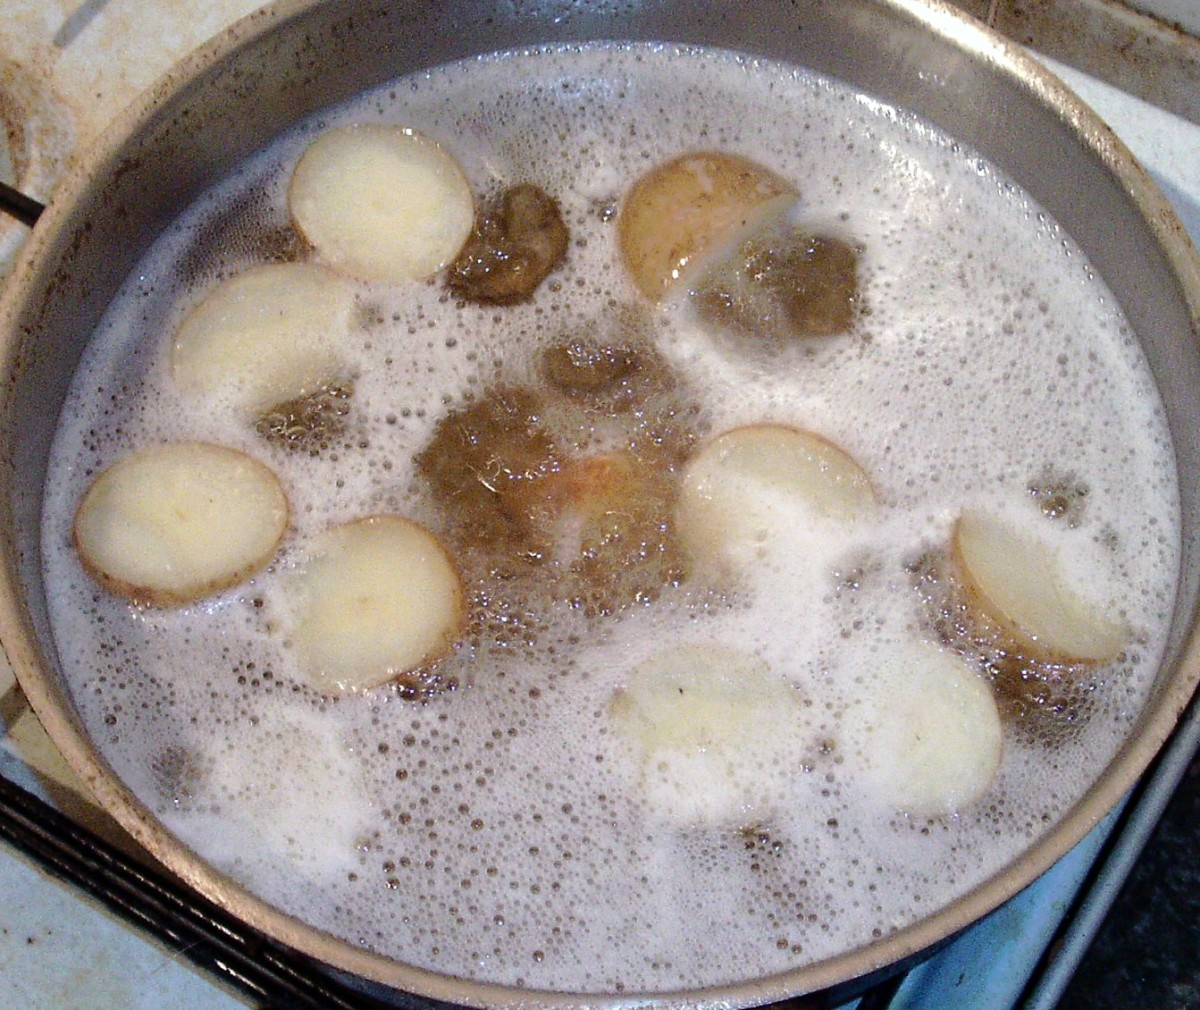 Deep frying potatoes